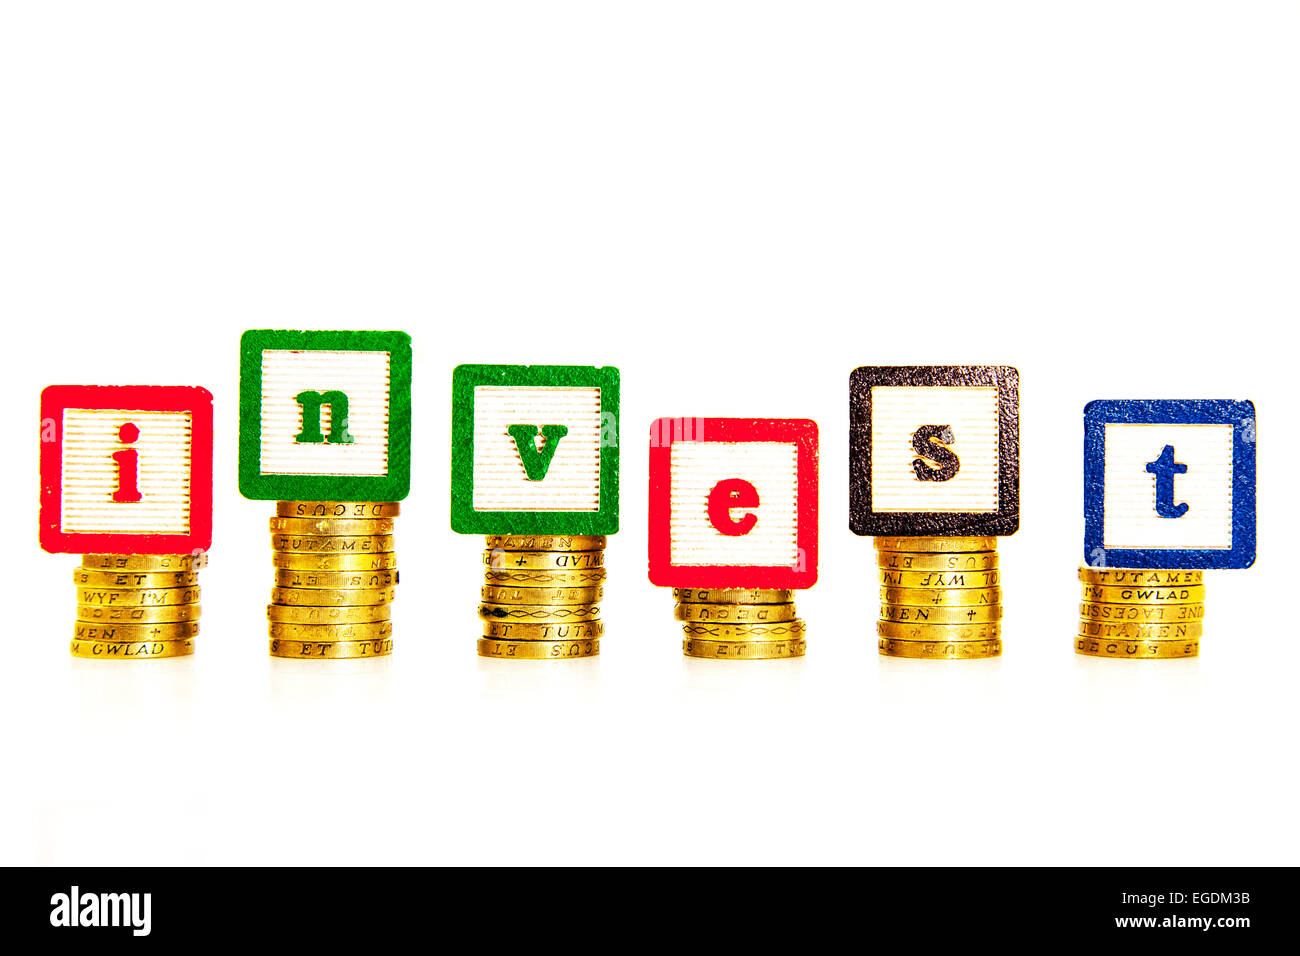 Invest money cash investing investment save saving return shares isa bonds cutout cut out white background copy - Stock Image